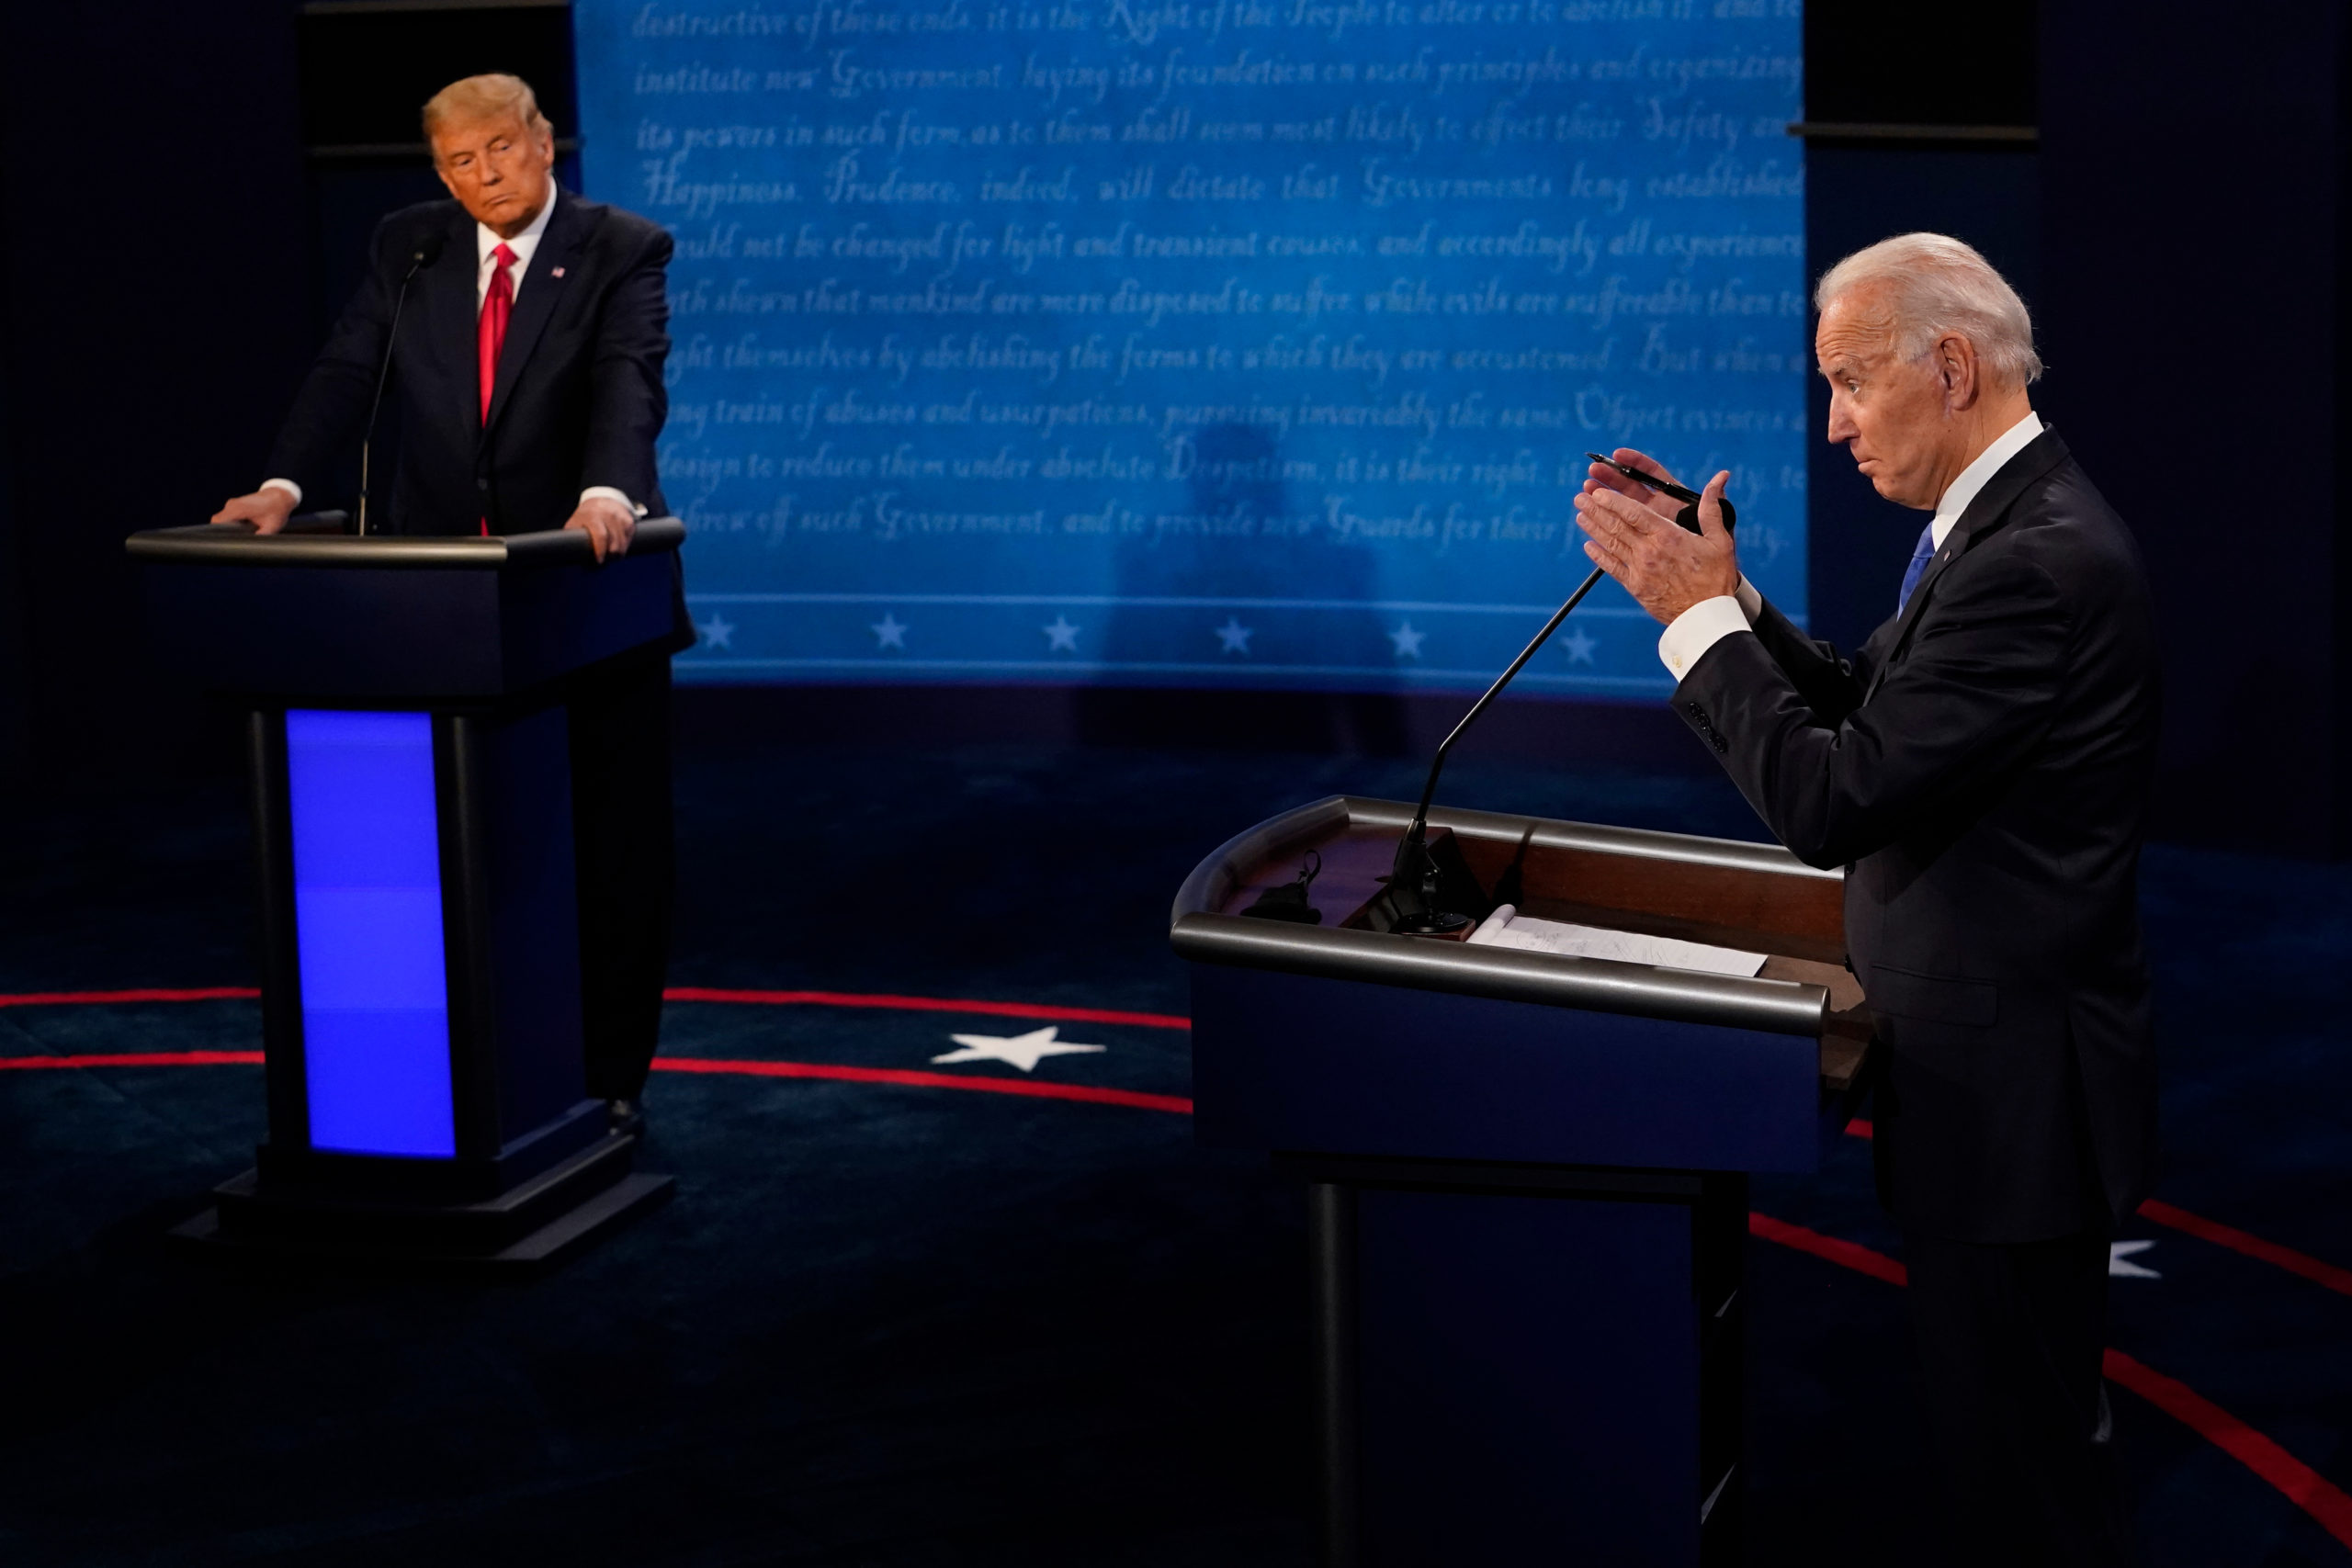 NASHVILLE, TENNESSEE - OCTOBER 22: Democratic presidential candidate former Vice President Joe Biden answers a question as President Donald Trump listens during the second and final presidential debate at Belmont University on October 22, 2020 in Nashville, Tennessee. This is the last debate between the two candidates before the election on November 3. (Photo by Morry Gash-Pool/Getty Images)